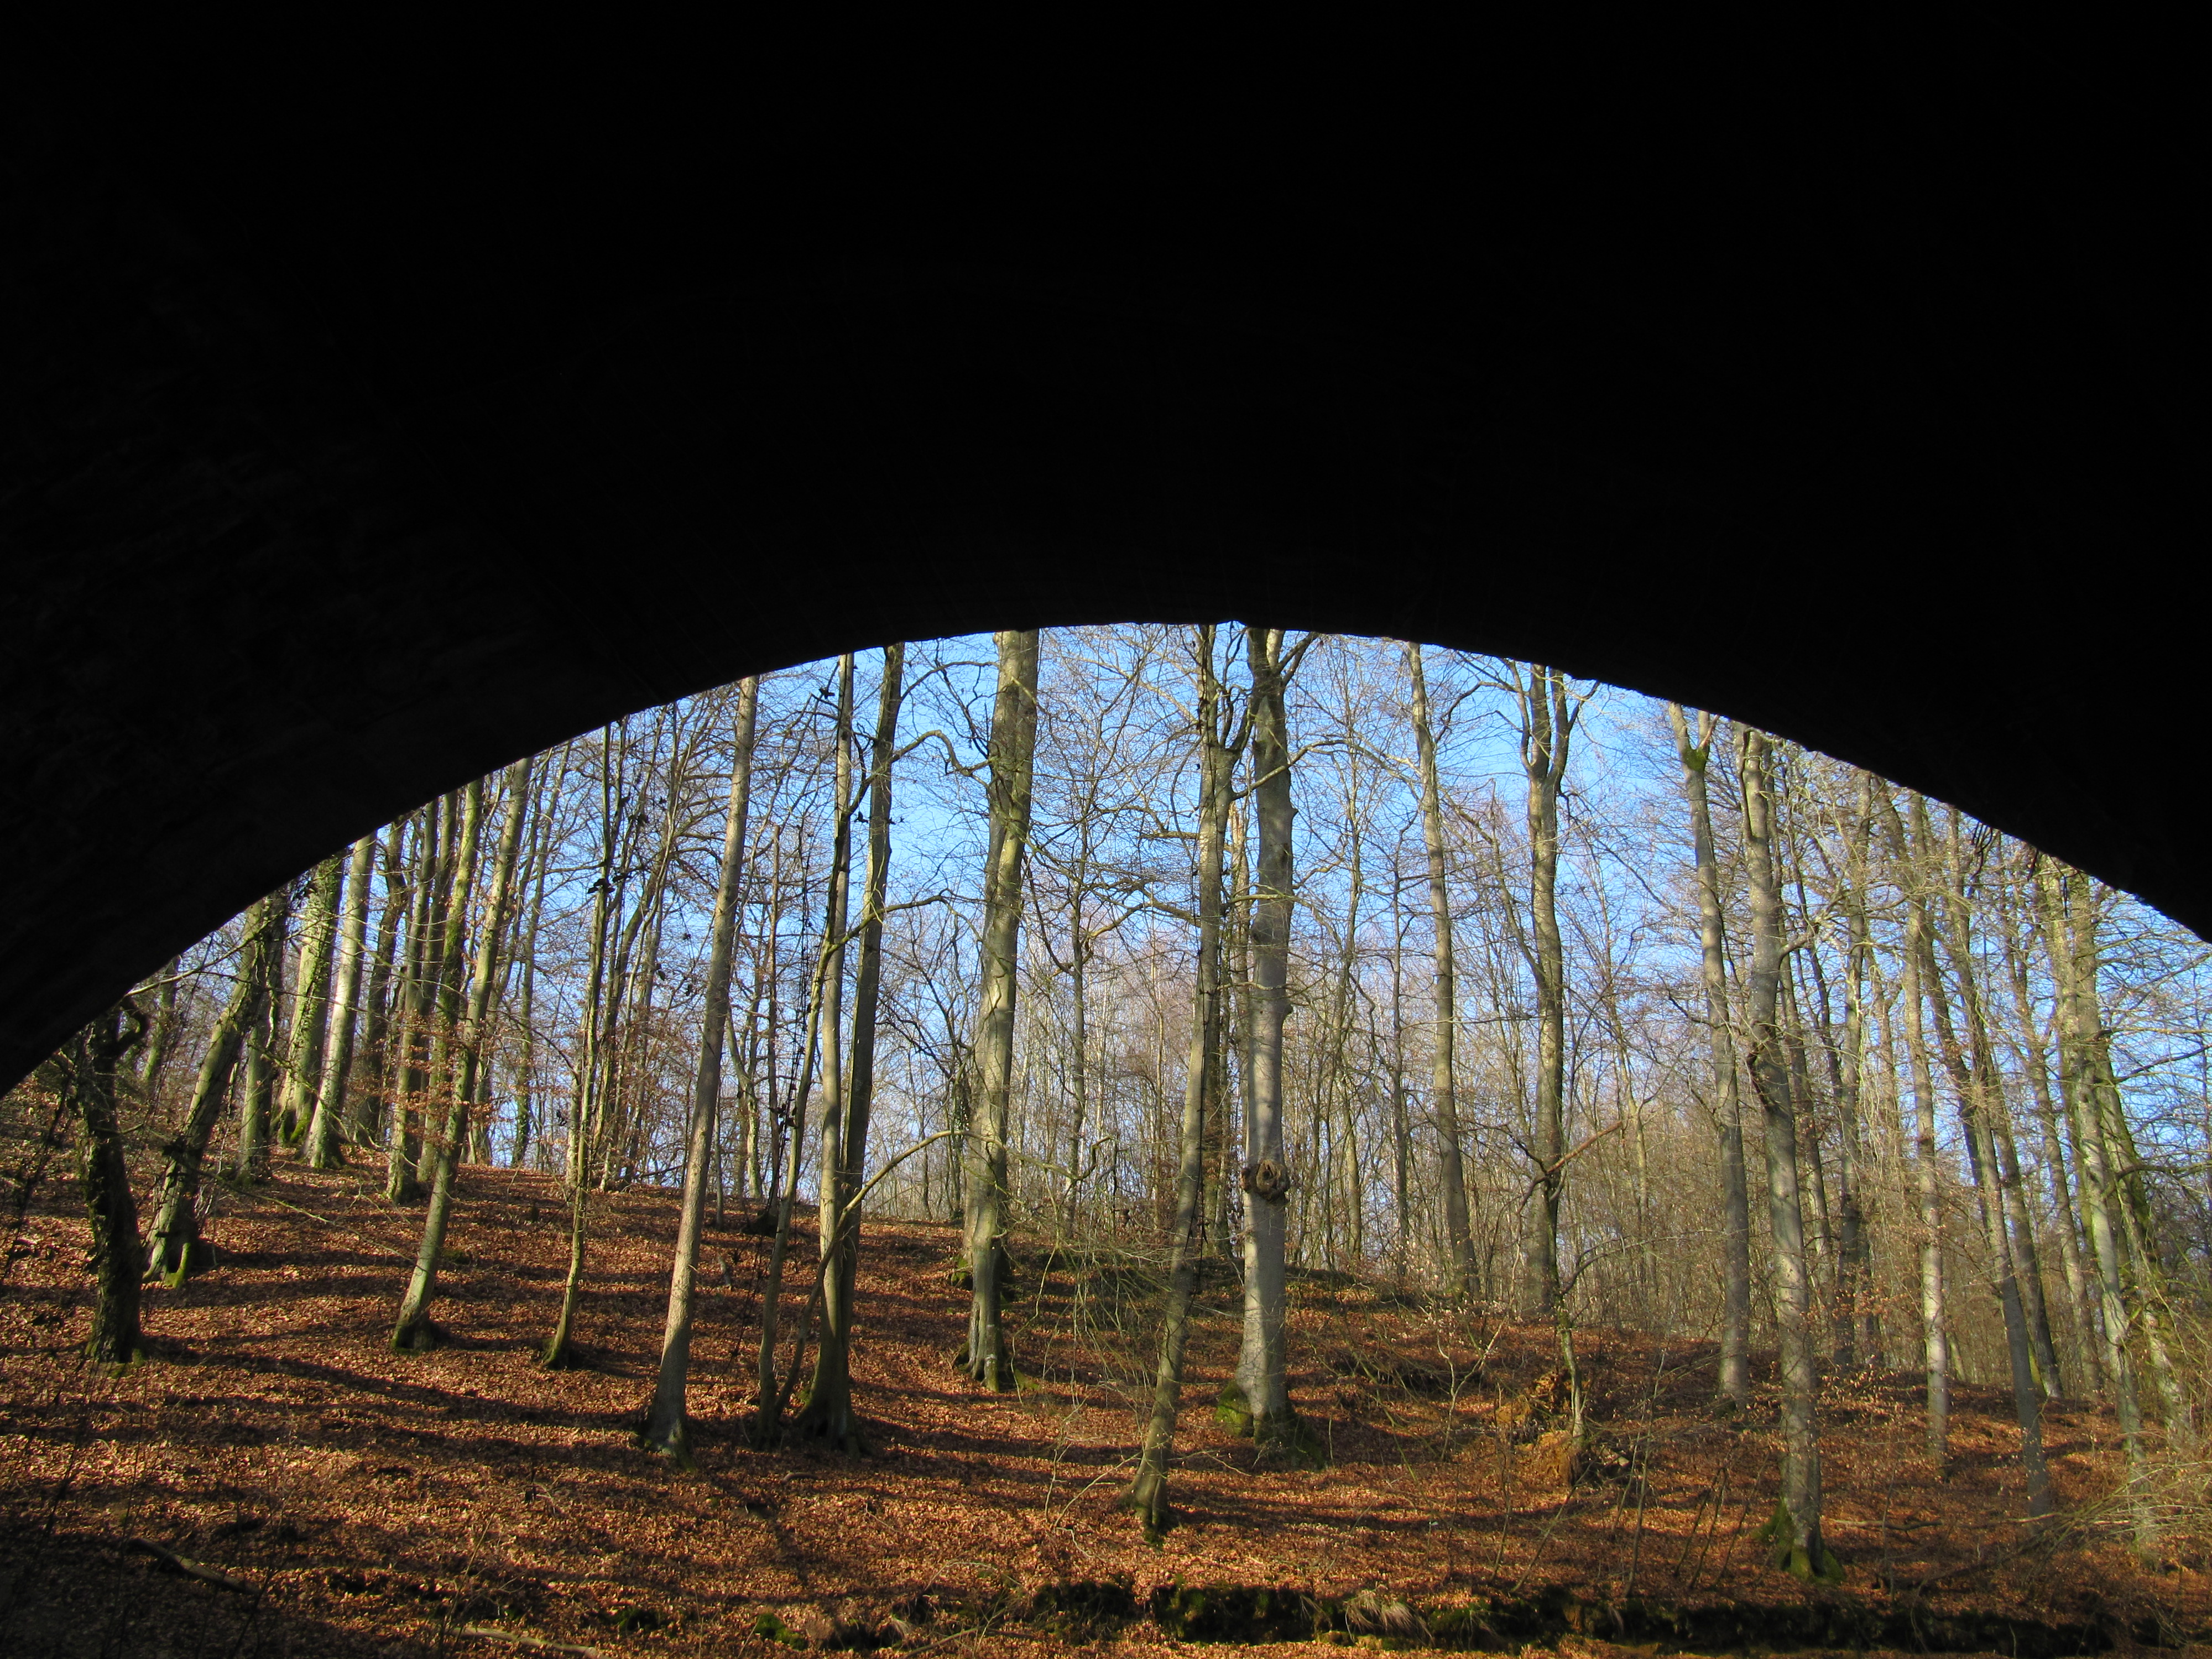 March 6, 2011 tunnel vision